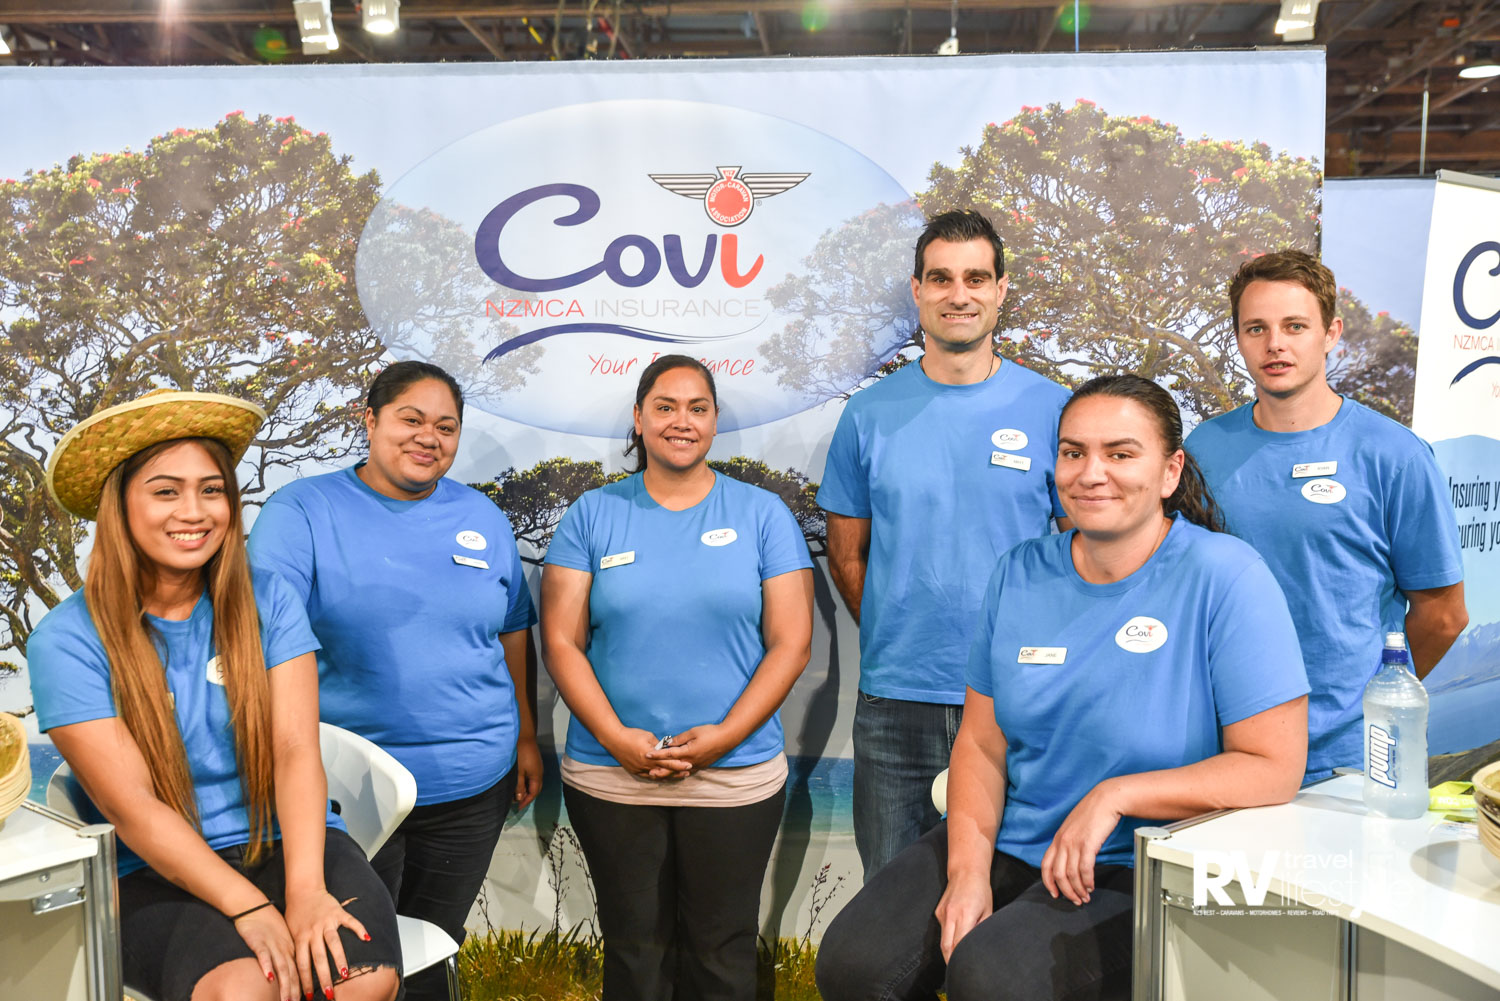 The Covi Insurance team had visitors playing games on their stand to lots of laughter